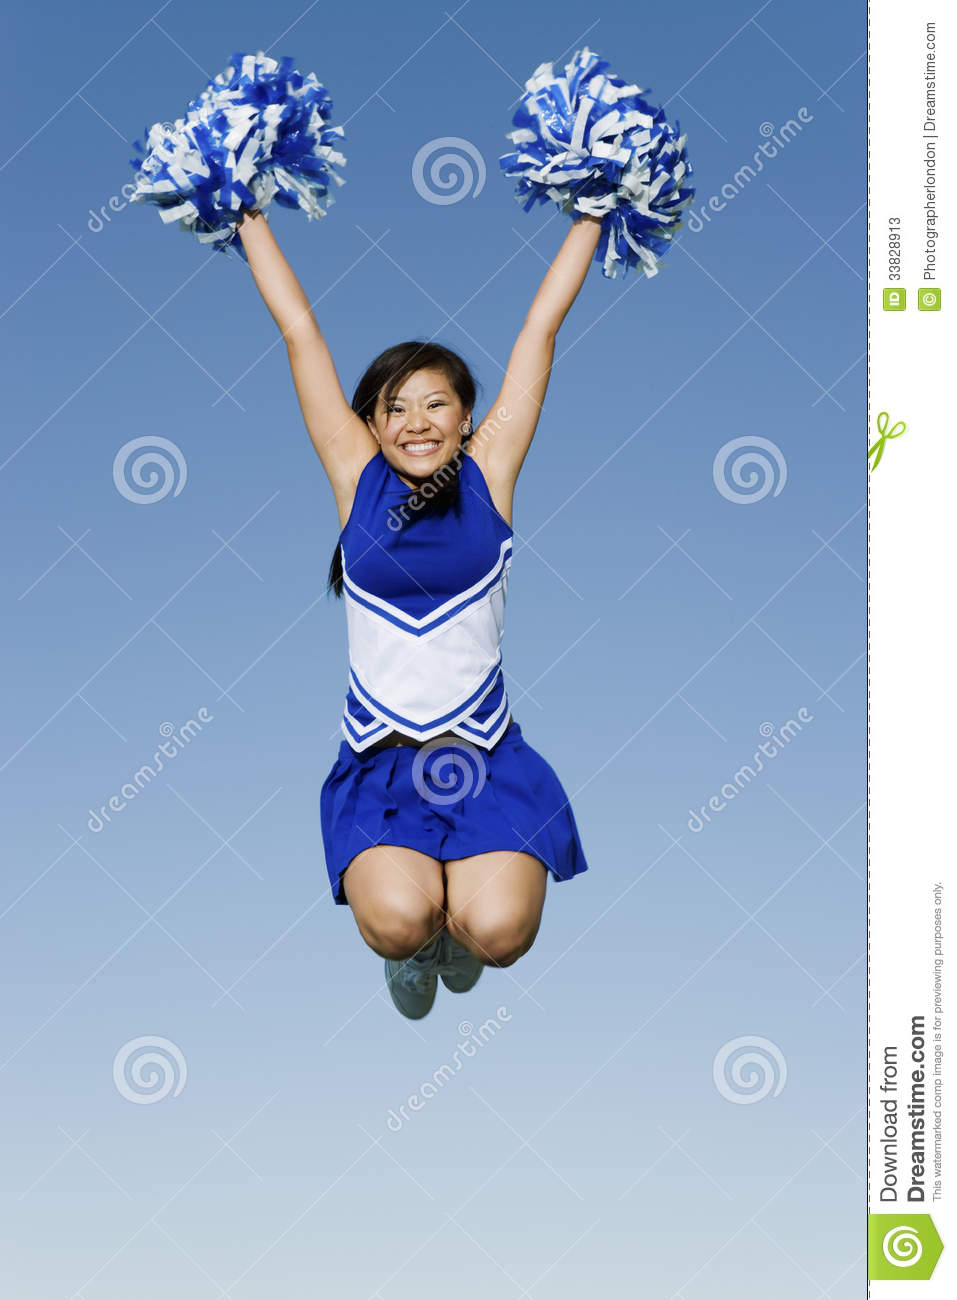 cheerleader with pompoms in midair against sky stock image